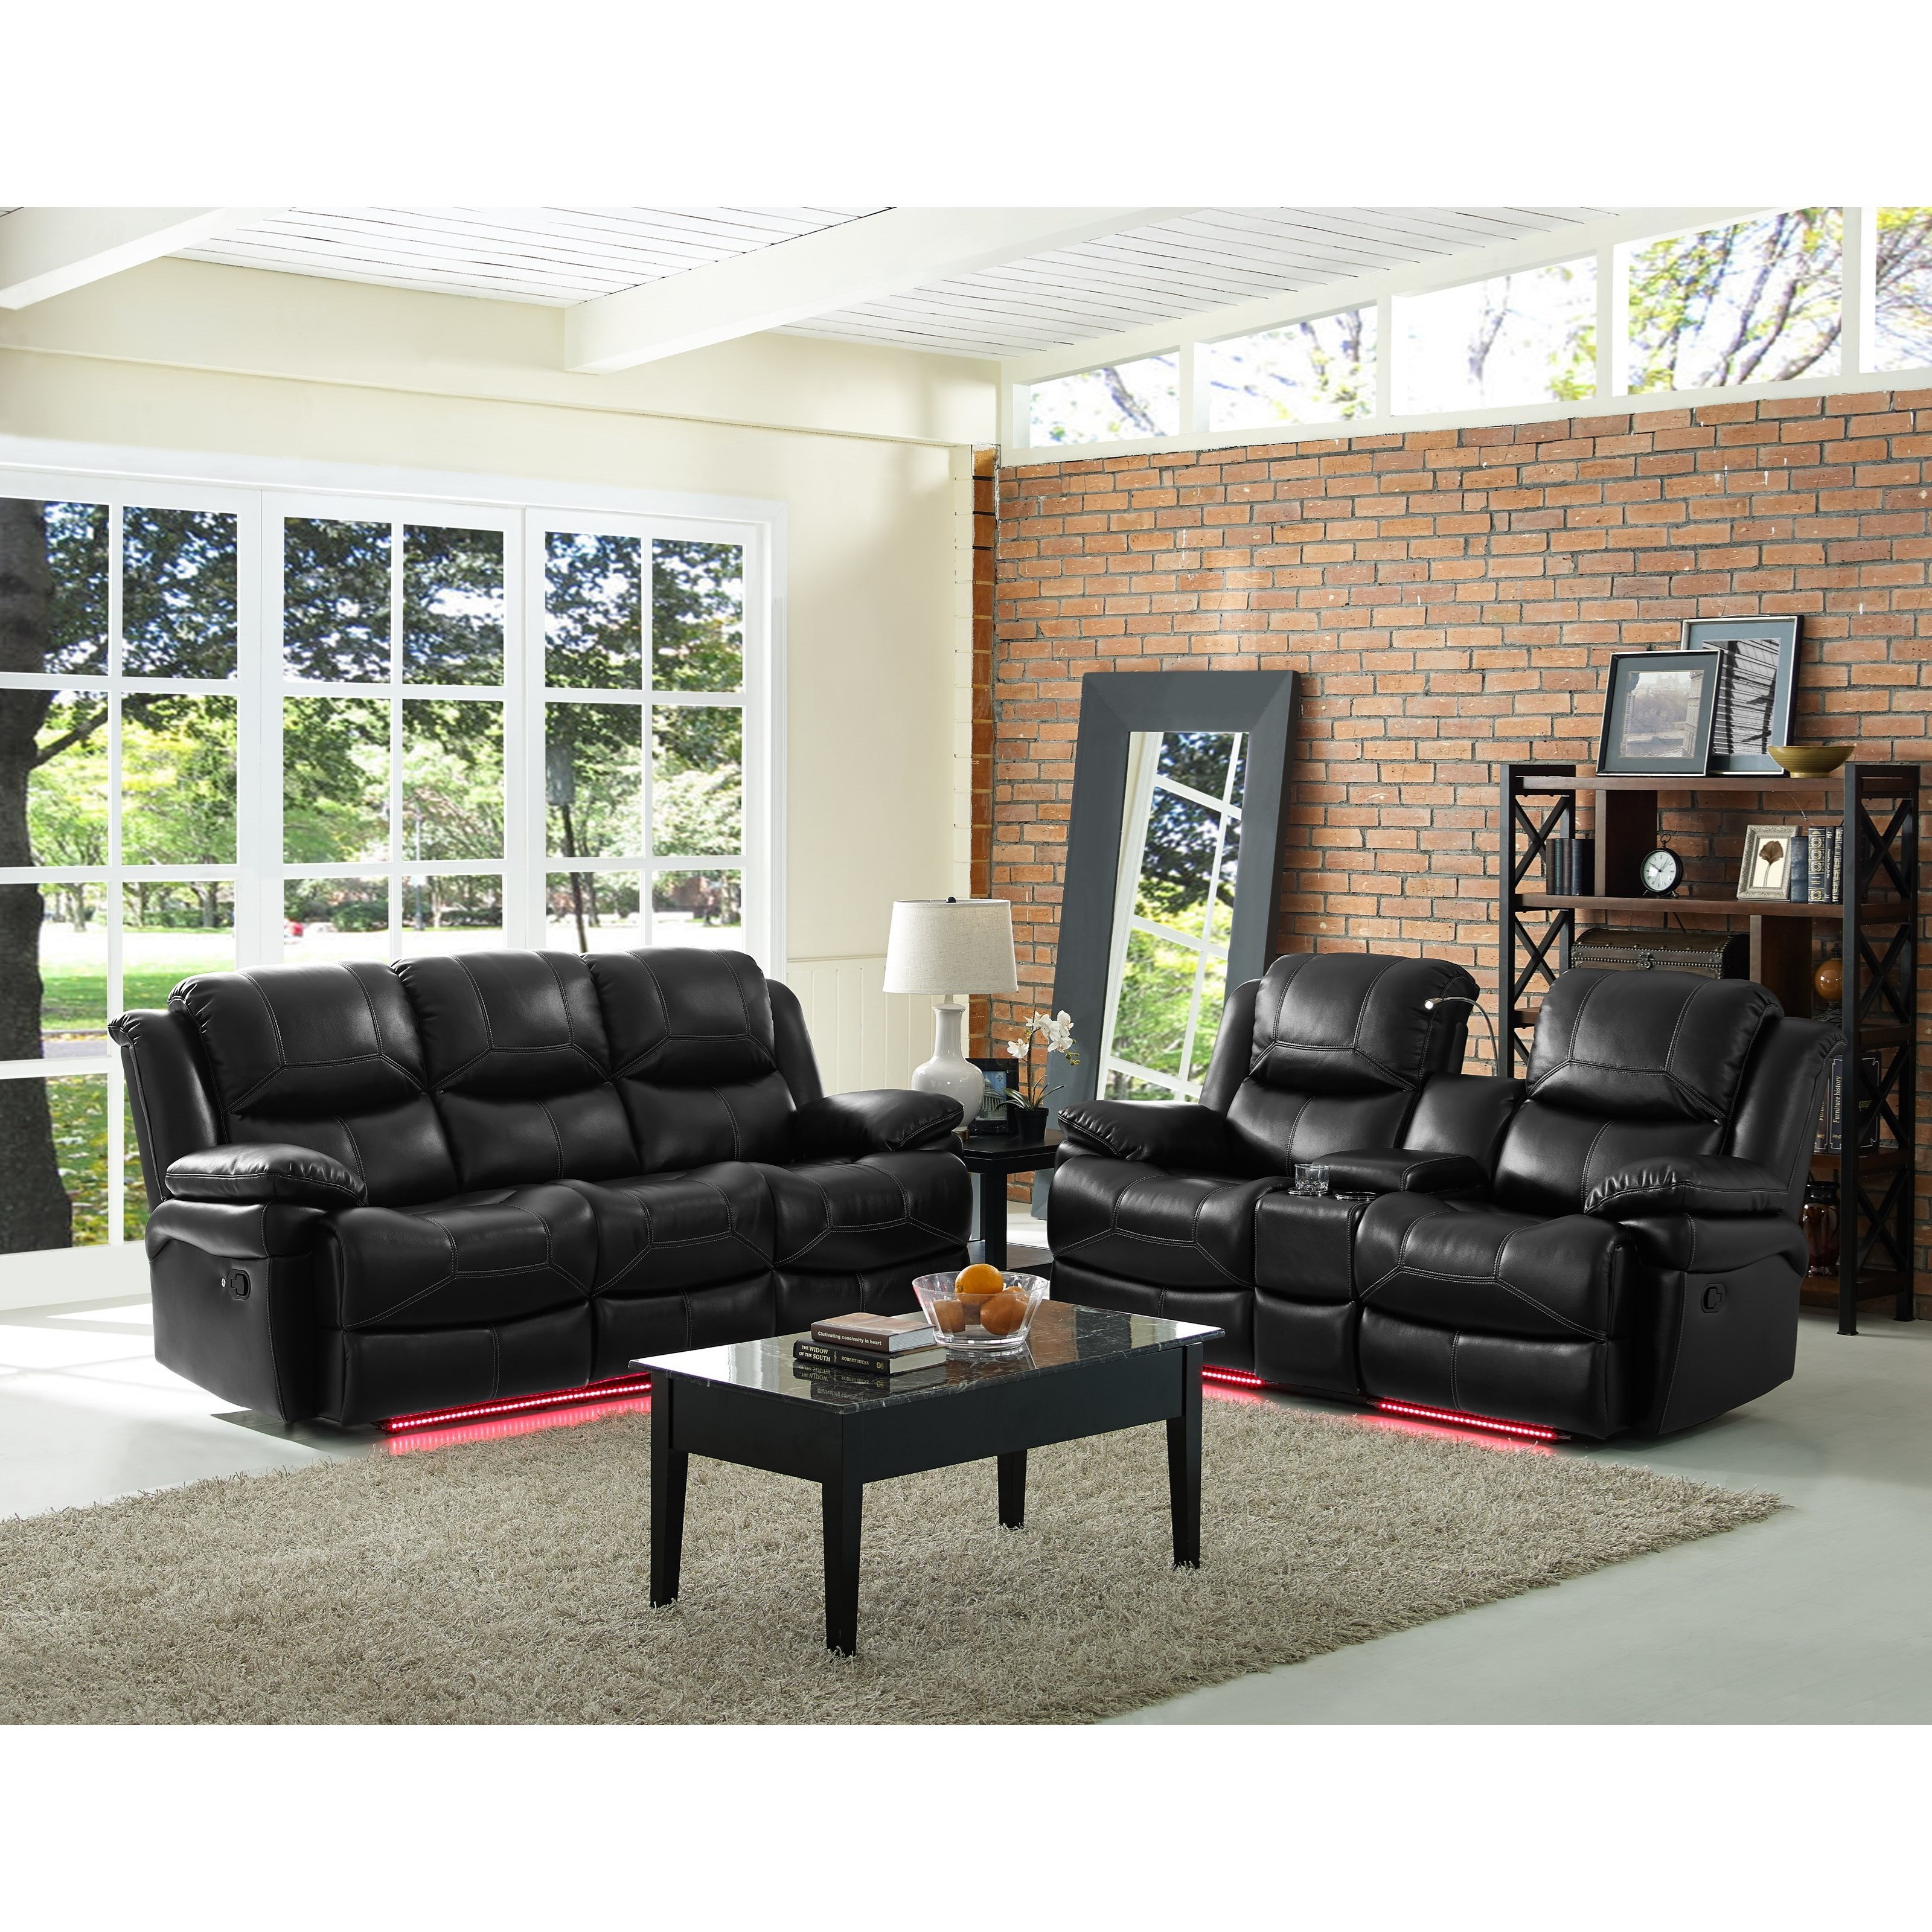 Flynn Power Reclining Living Room Group by New Classic at H.L. Stephens